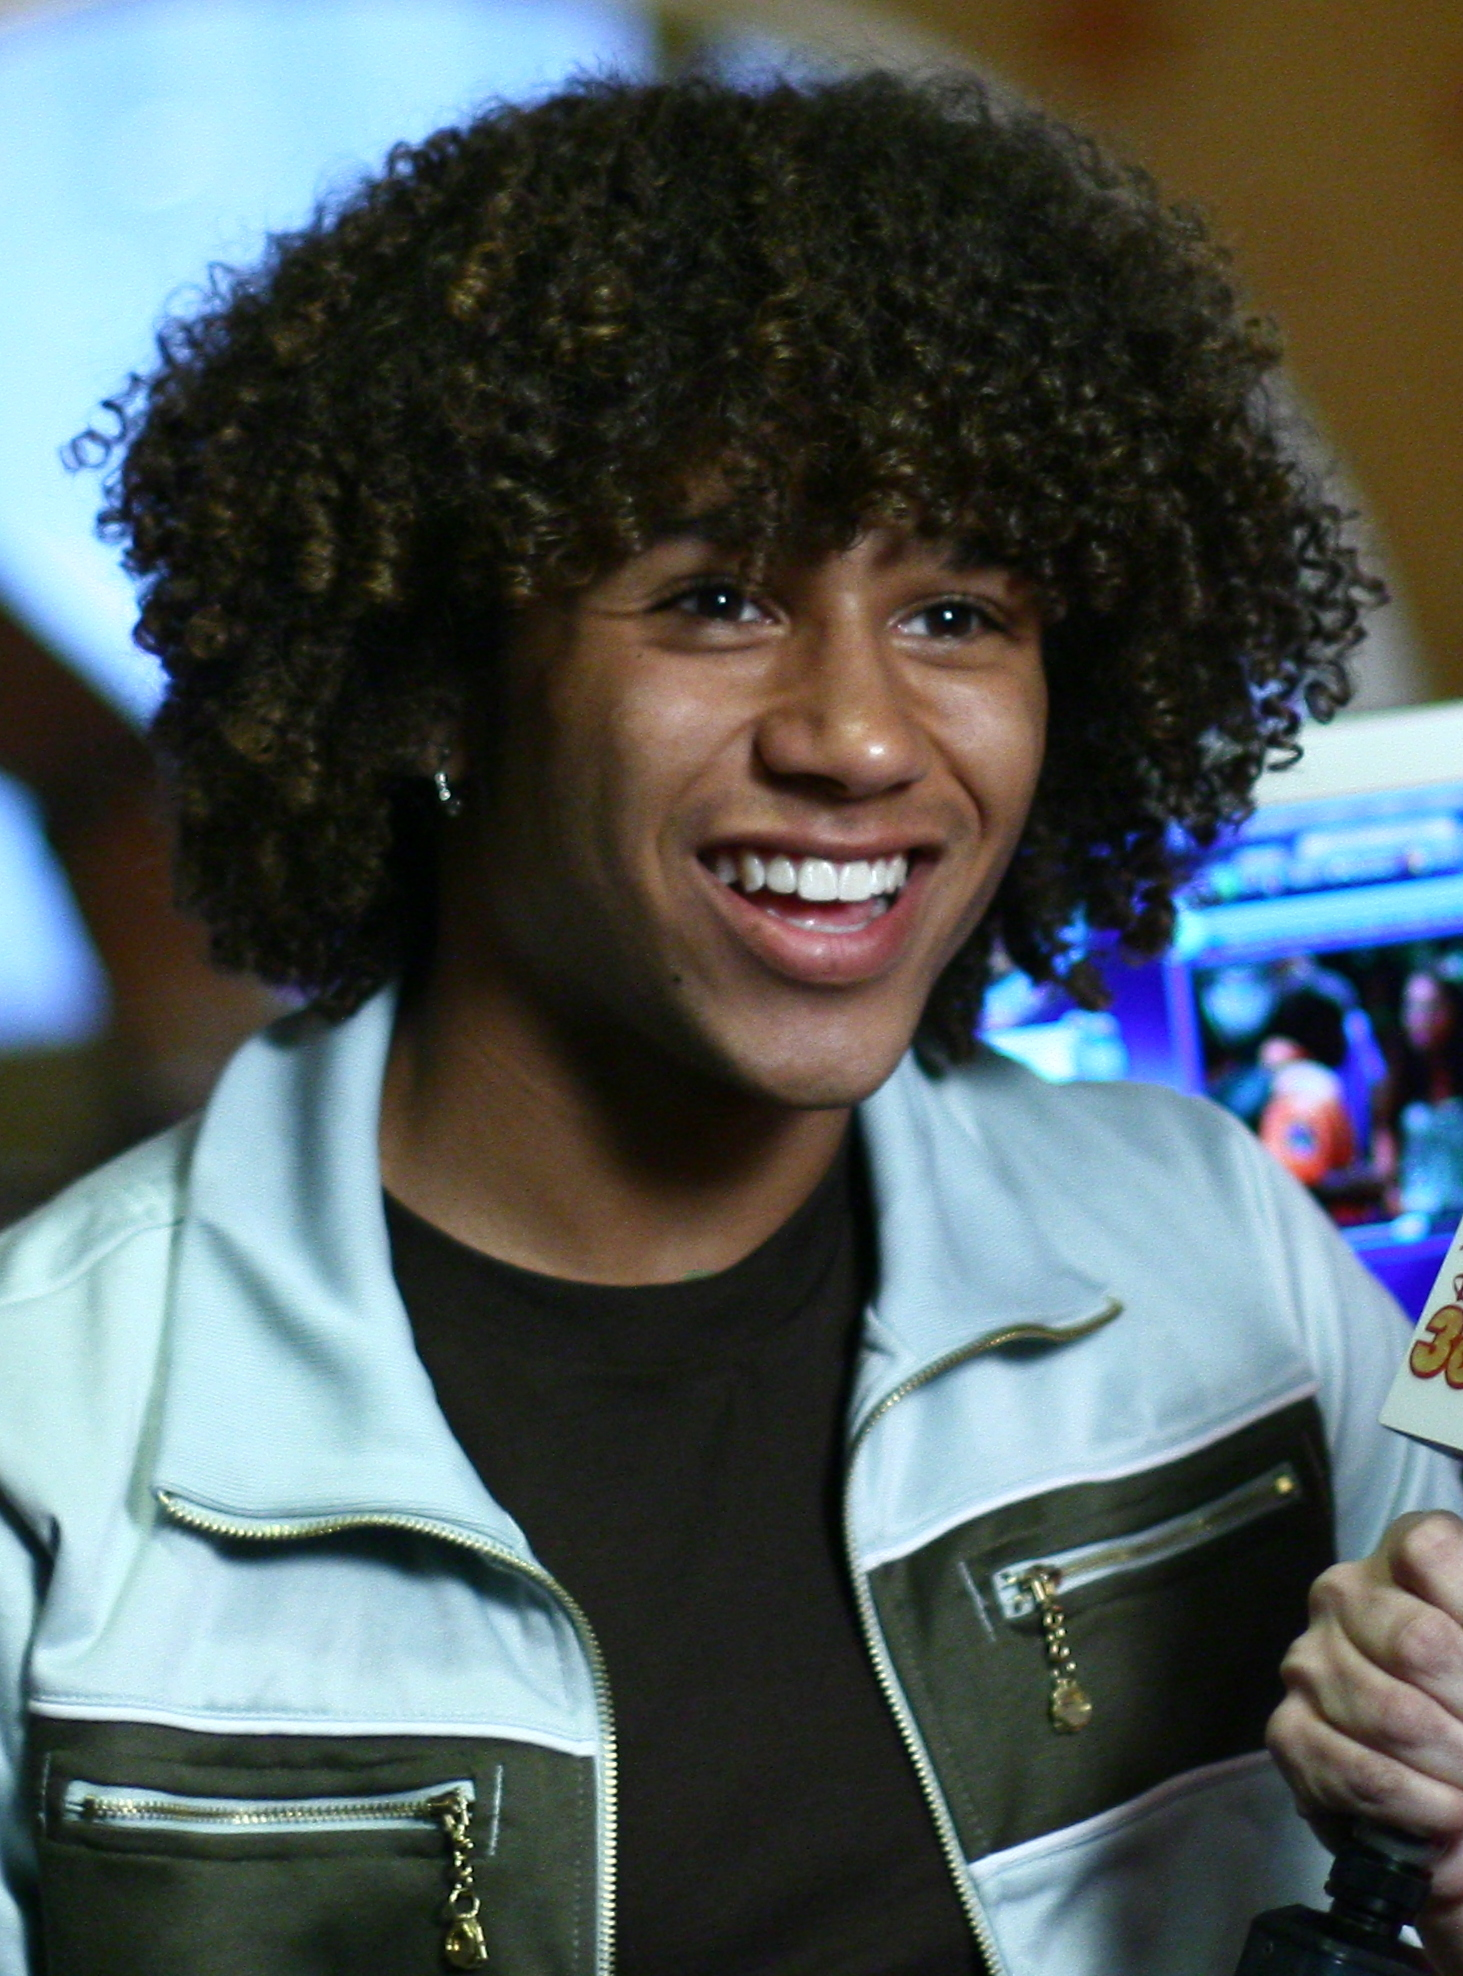 FileCorbin Bleu 4 Croppedjpg Wikimedia Commons